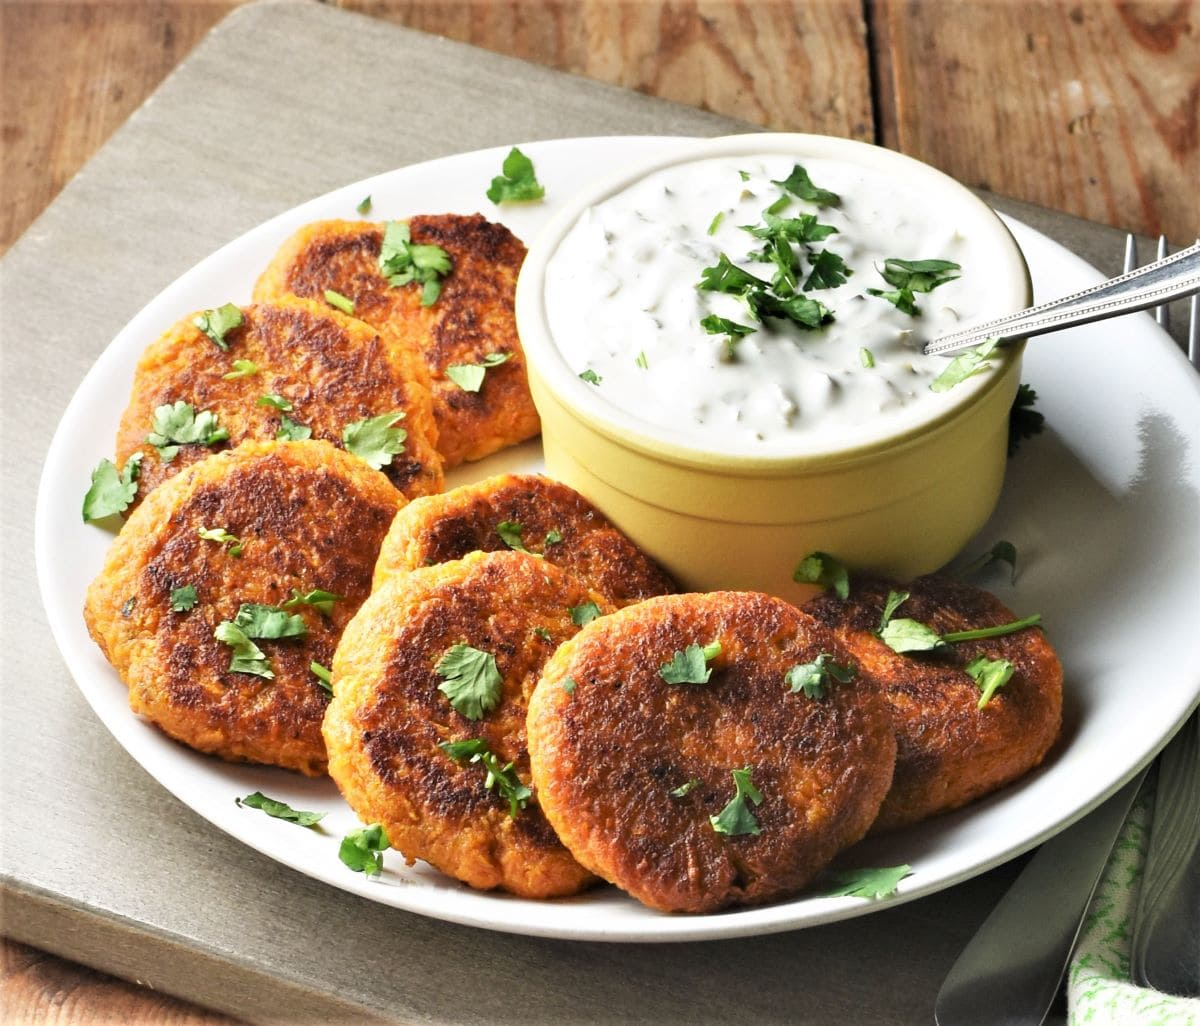 Side view of sweet potato cakes on top of plate with yogurt dip in the middle.